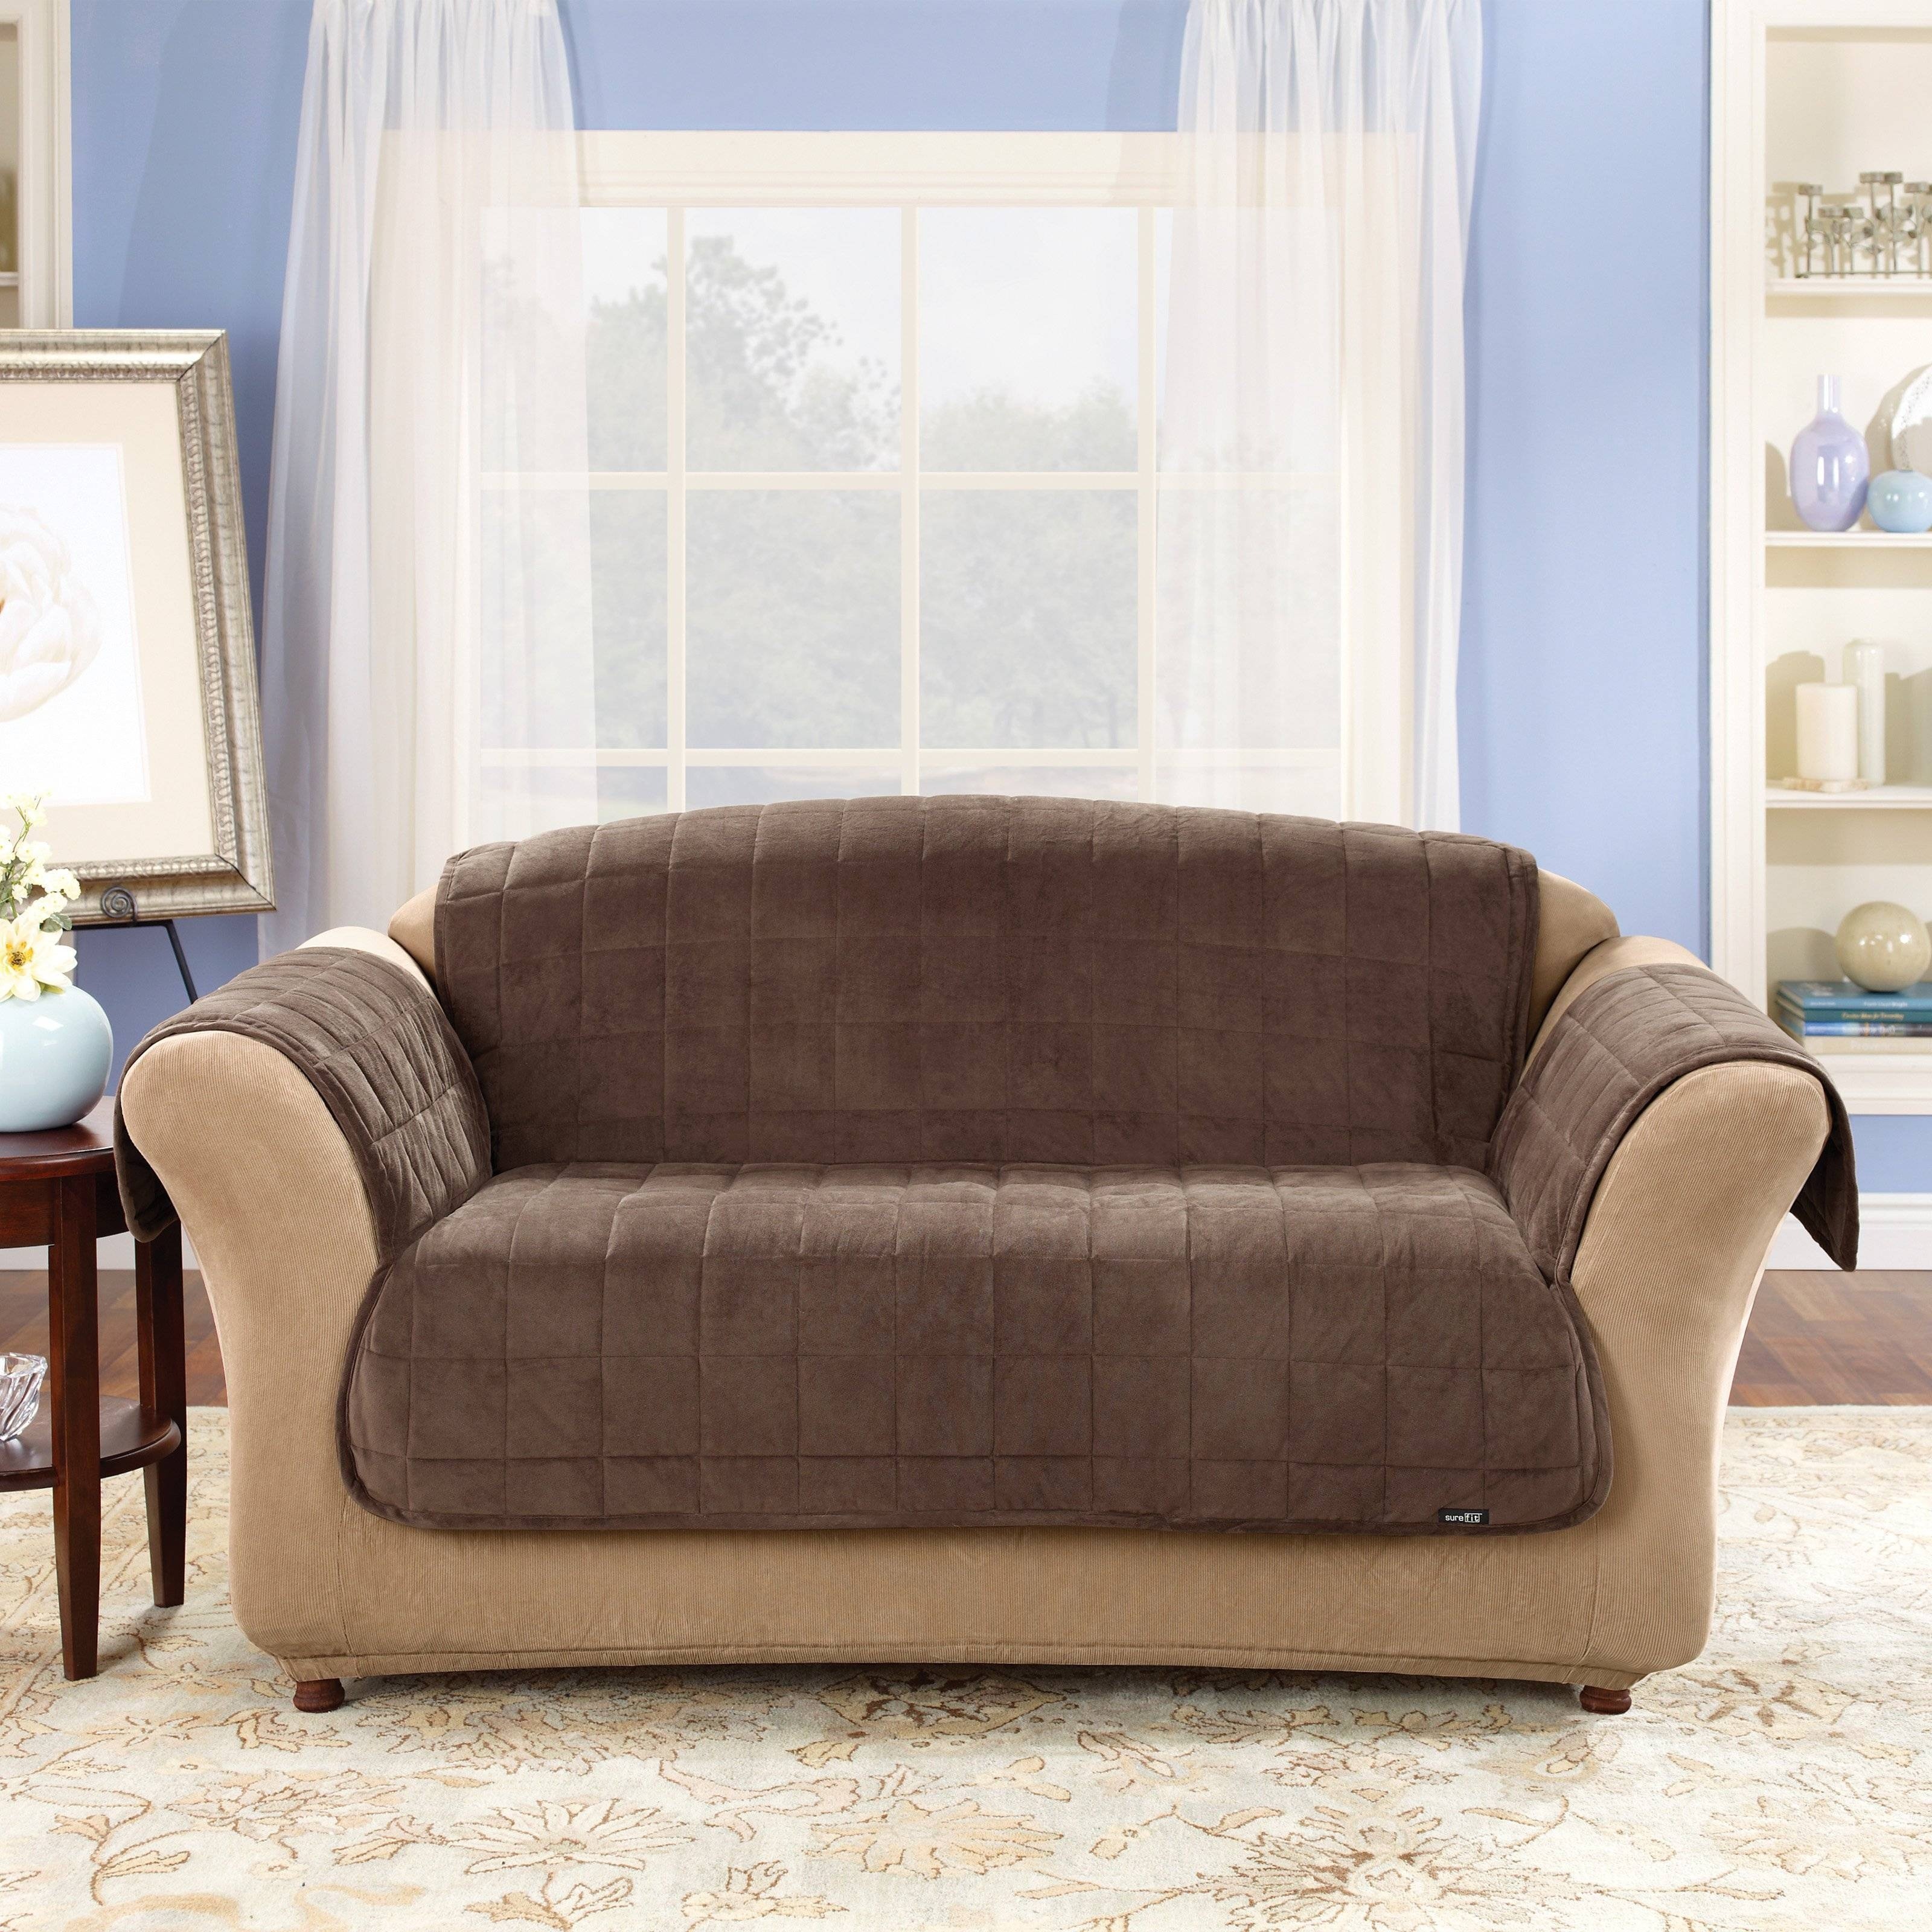 30 Best Collection Of Walmart Slipcovers For Sofas Pertaining To Chintz Sofa Covers (View 1 of 10)